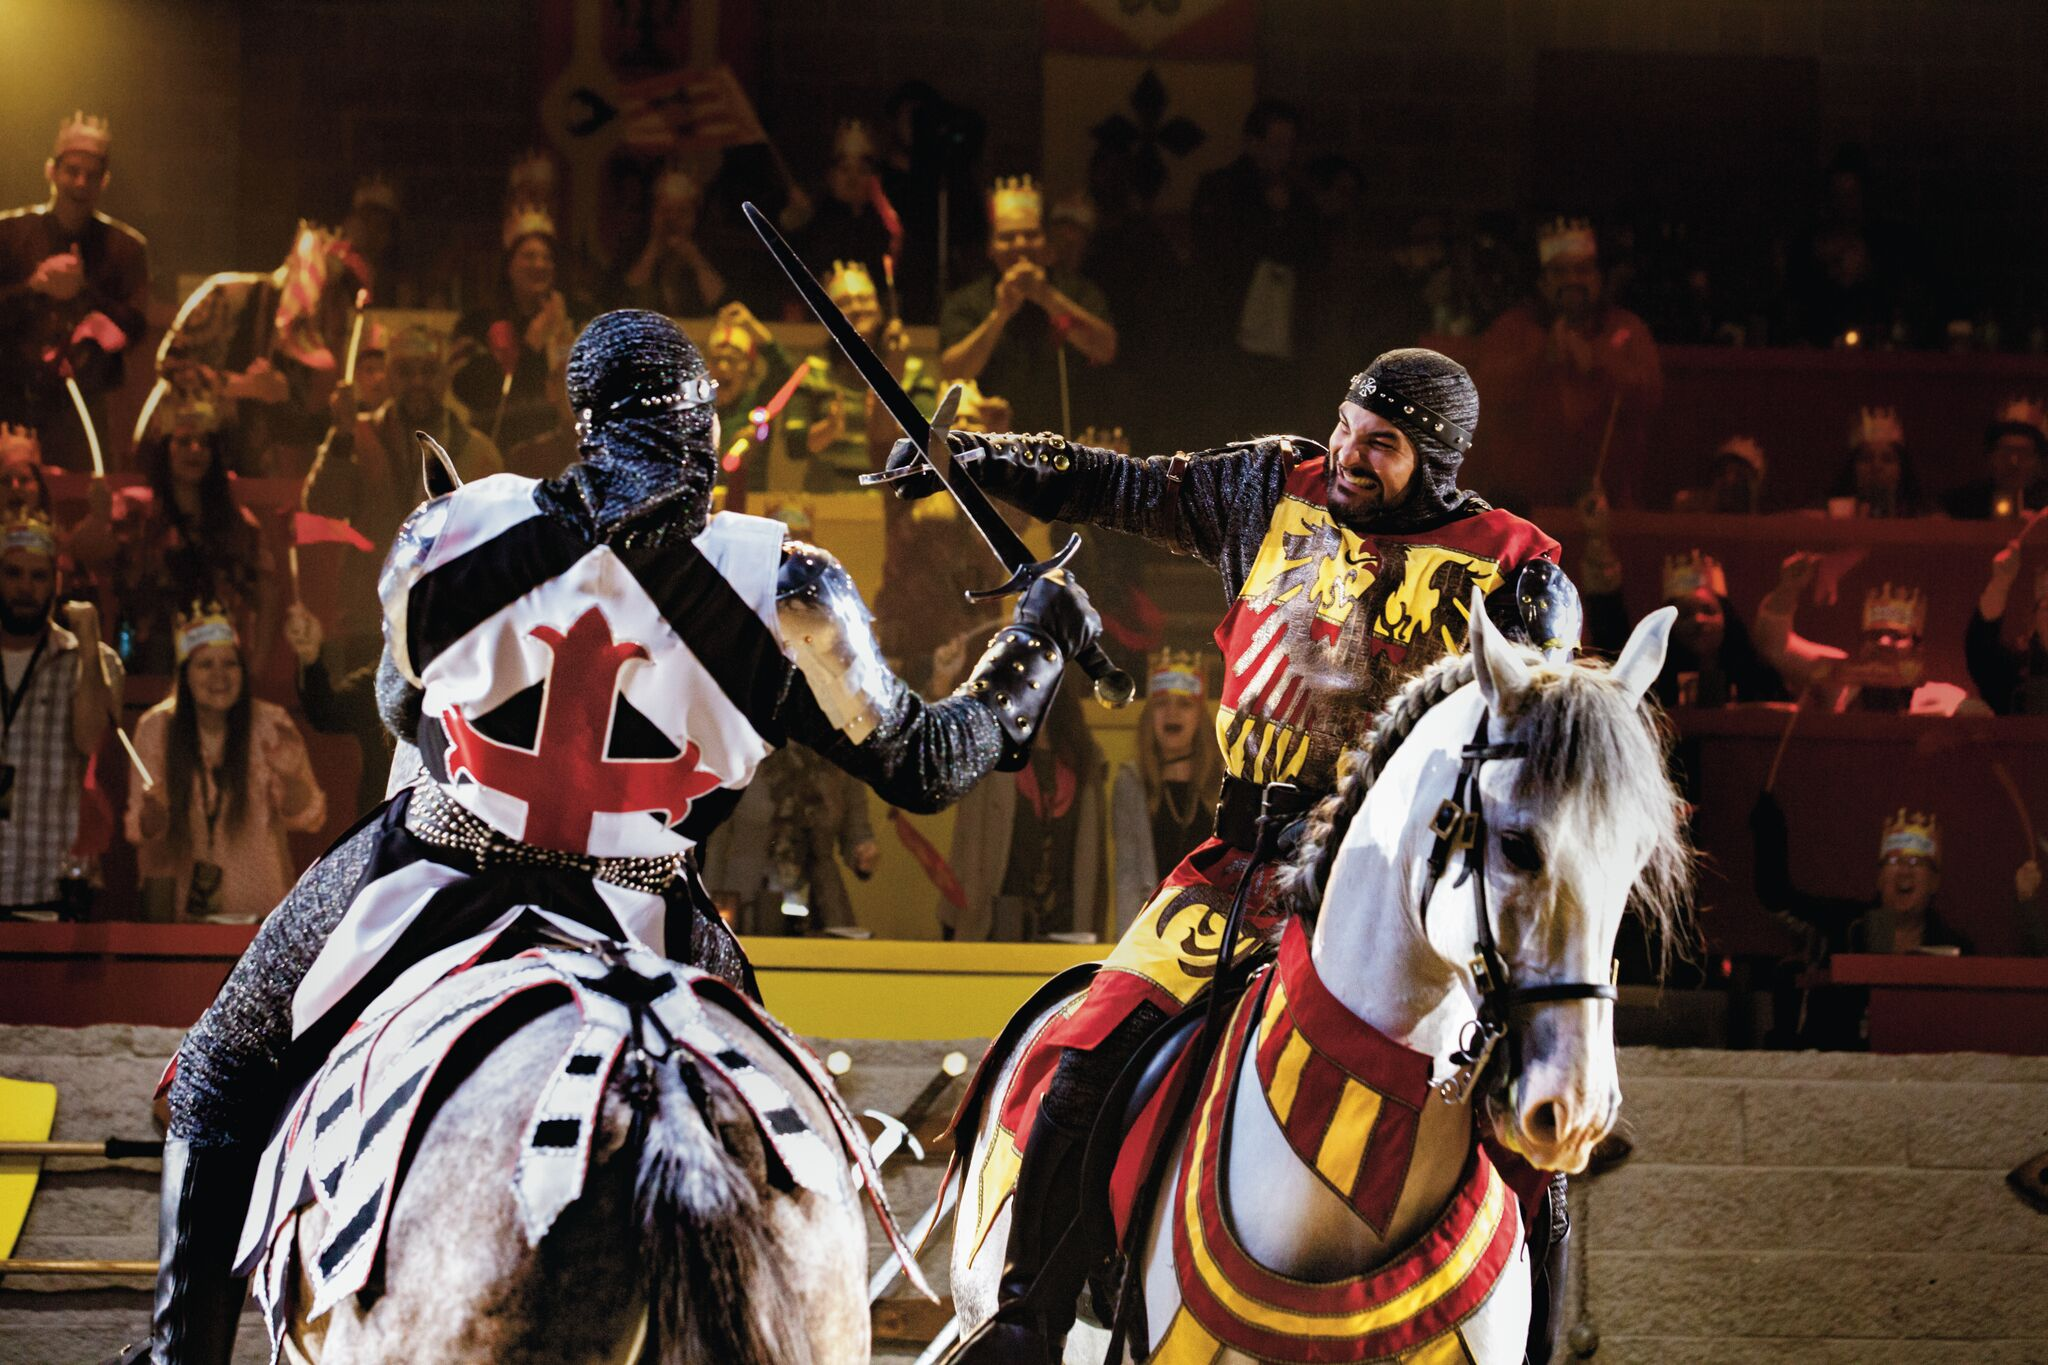 Ready to get Medieval for the holidays?